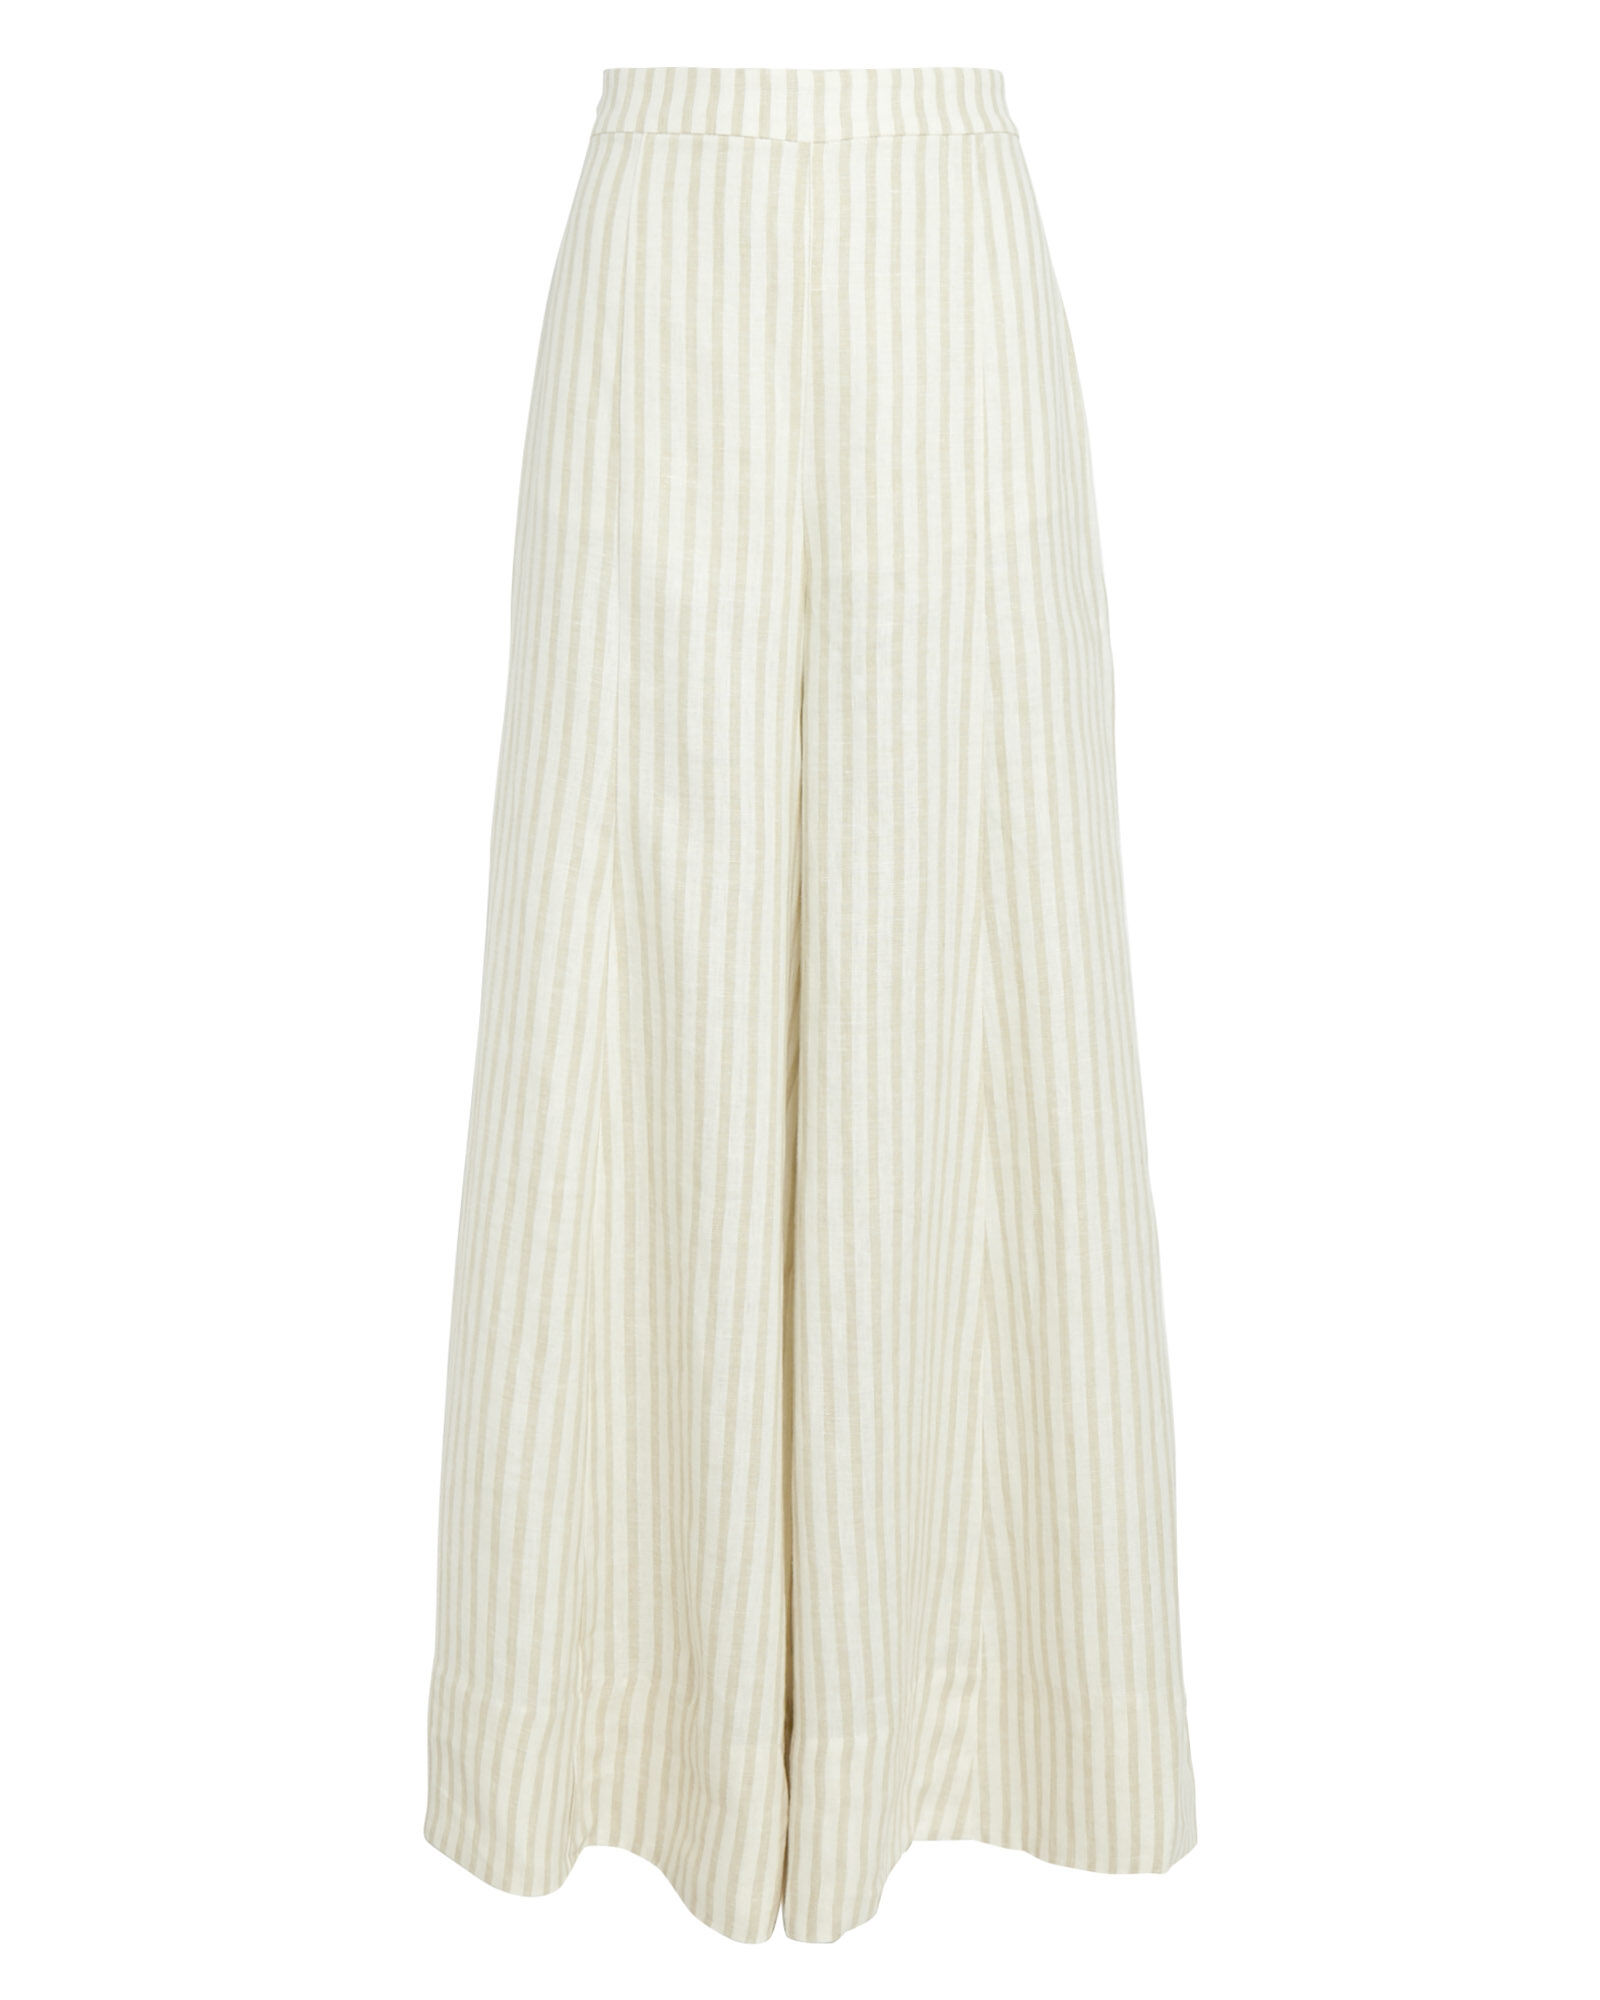 Kennedy Linen Palazzo Pants, IVORY, hi-res